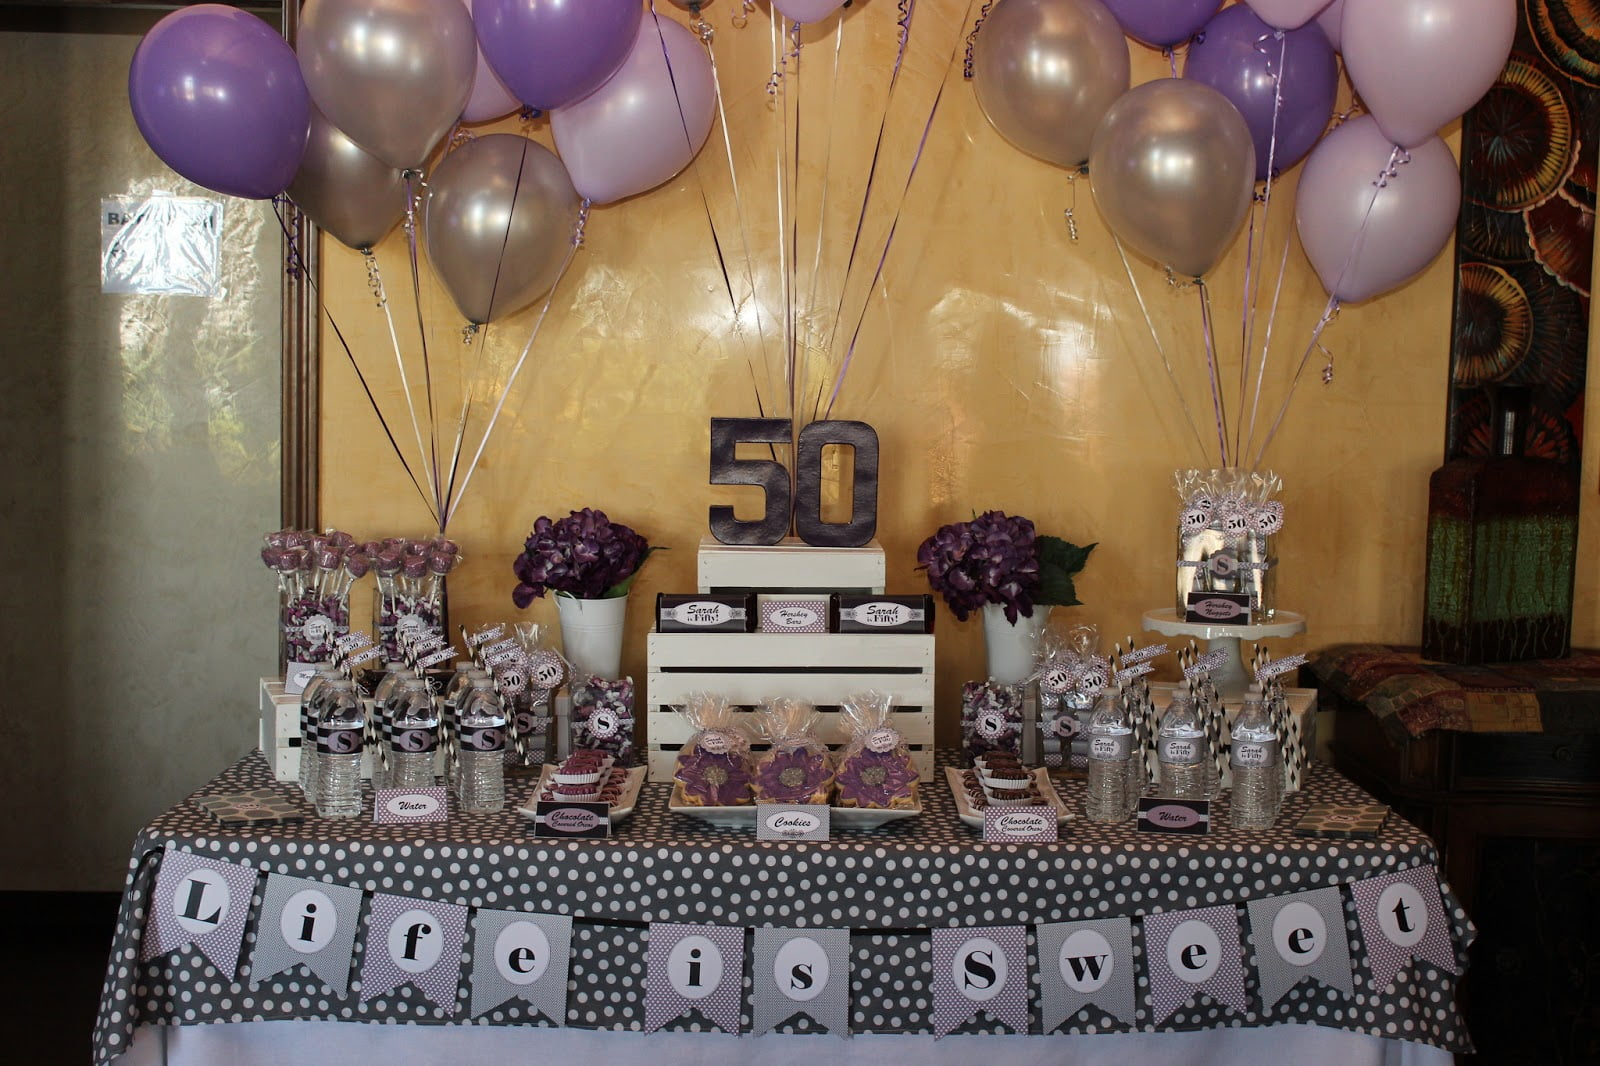 50 years old birthday party invitations celebration